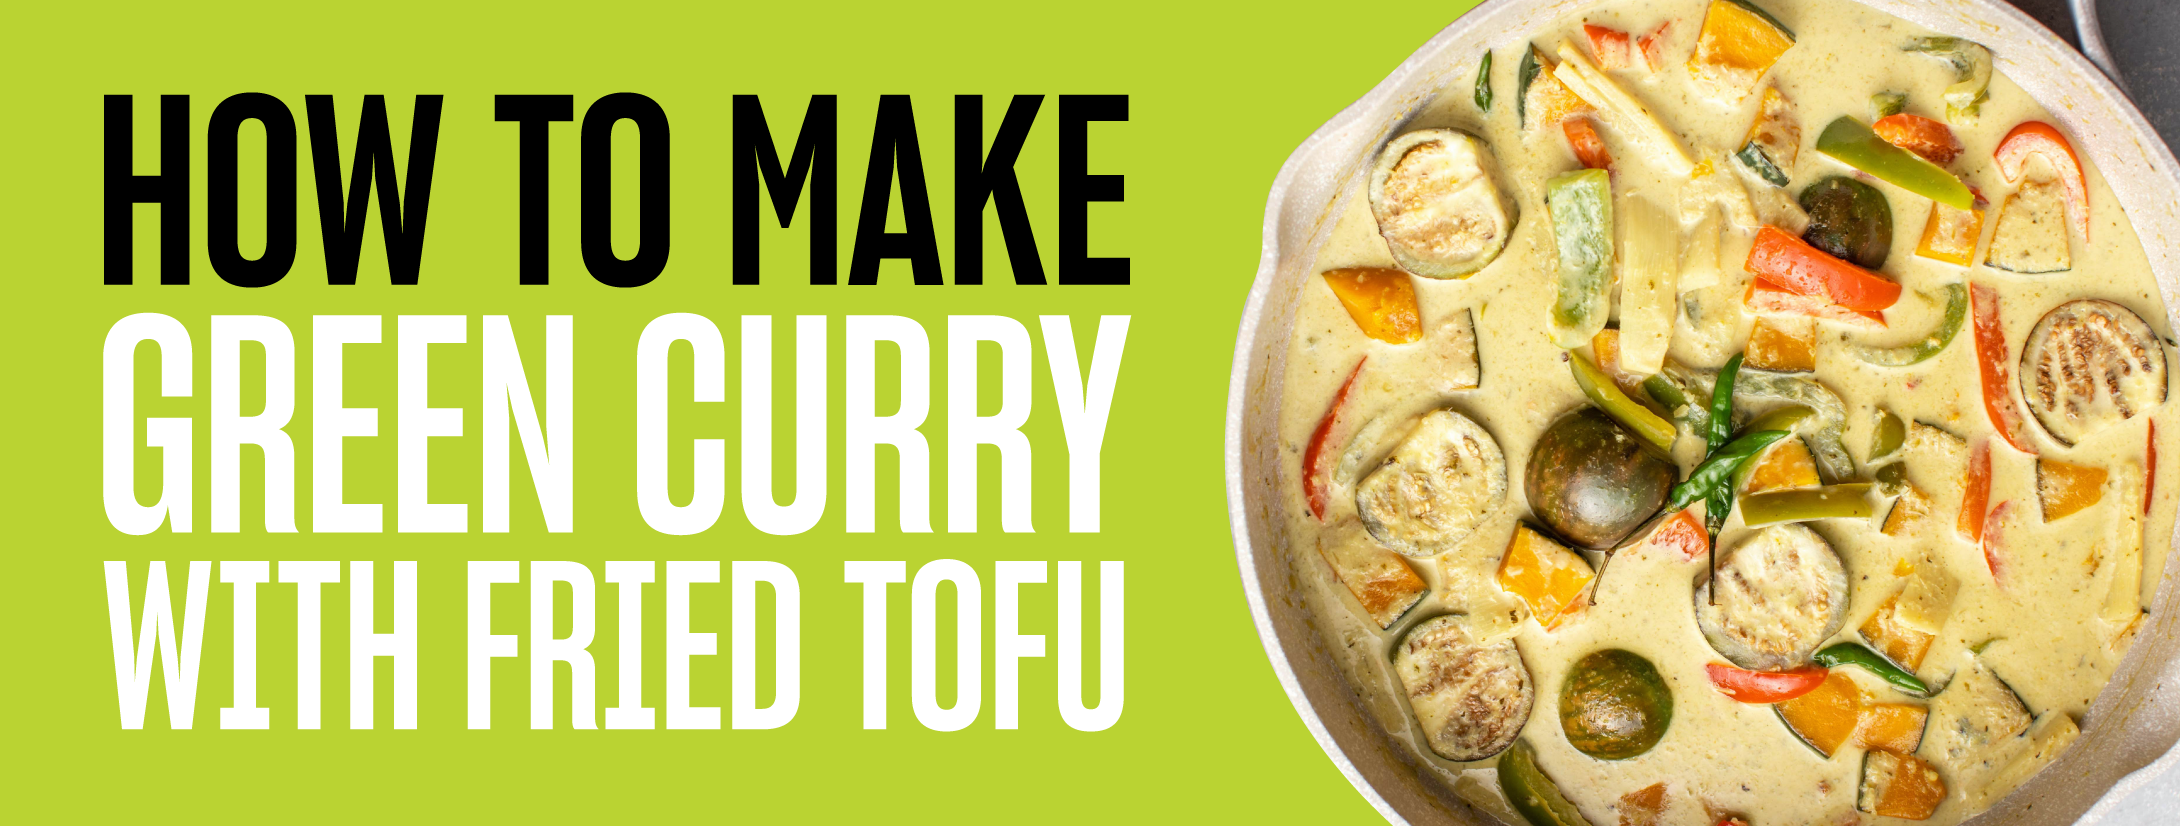 Green curry banner